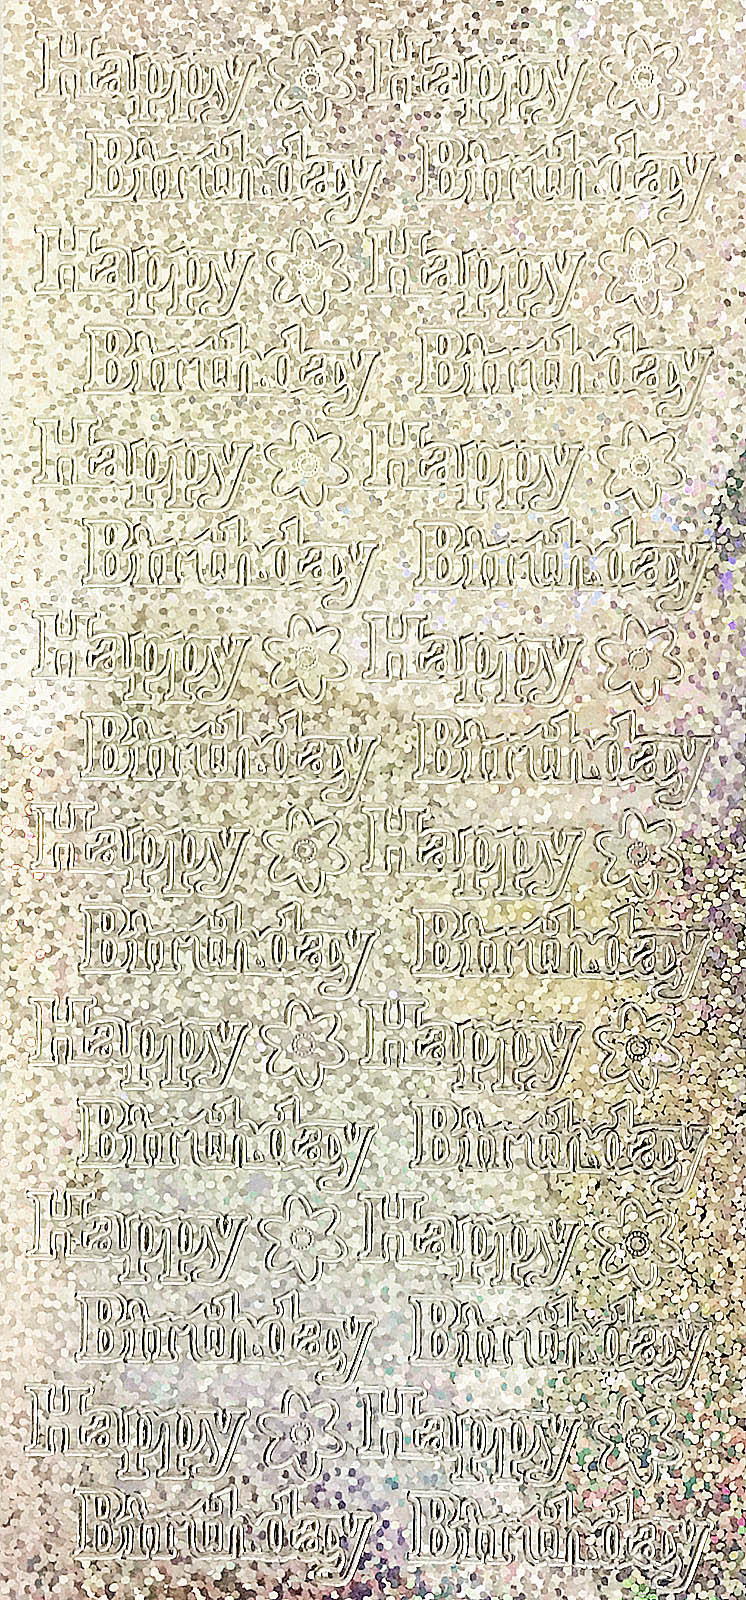 HAPPY BIRTHDAY large, HOLOGRAPHIC SILVER PEEL OFF STICKERS 837